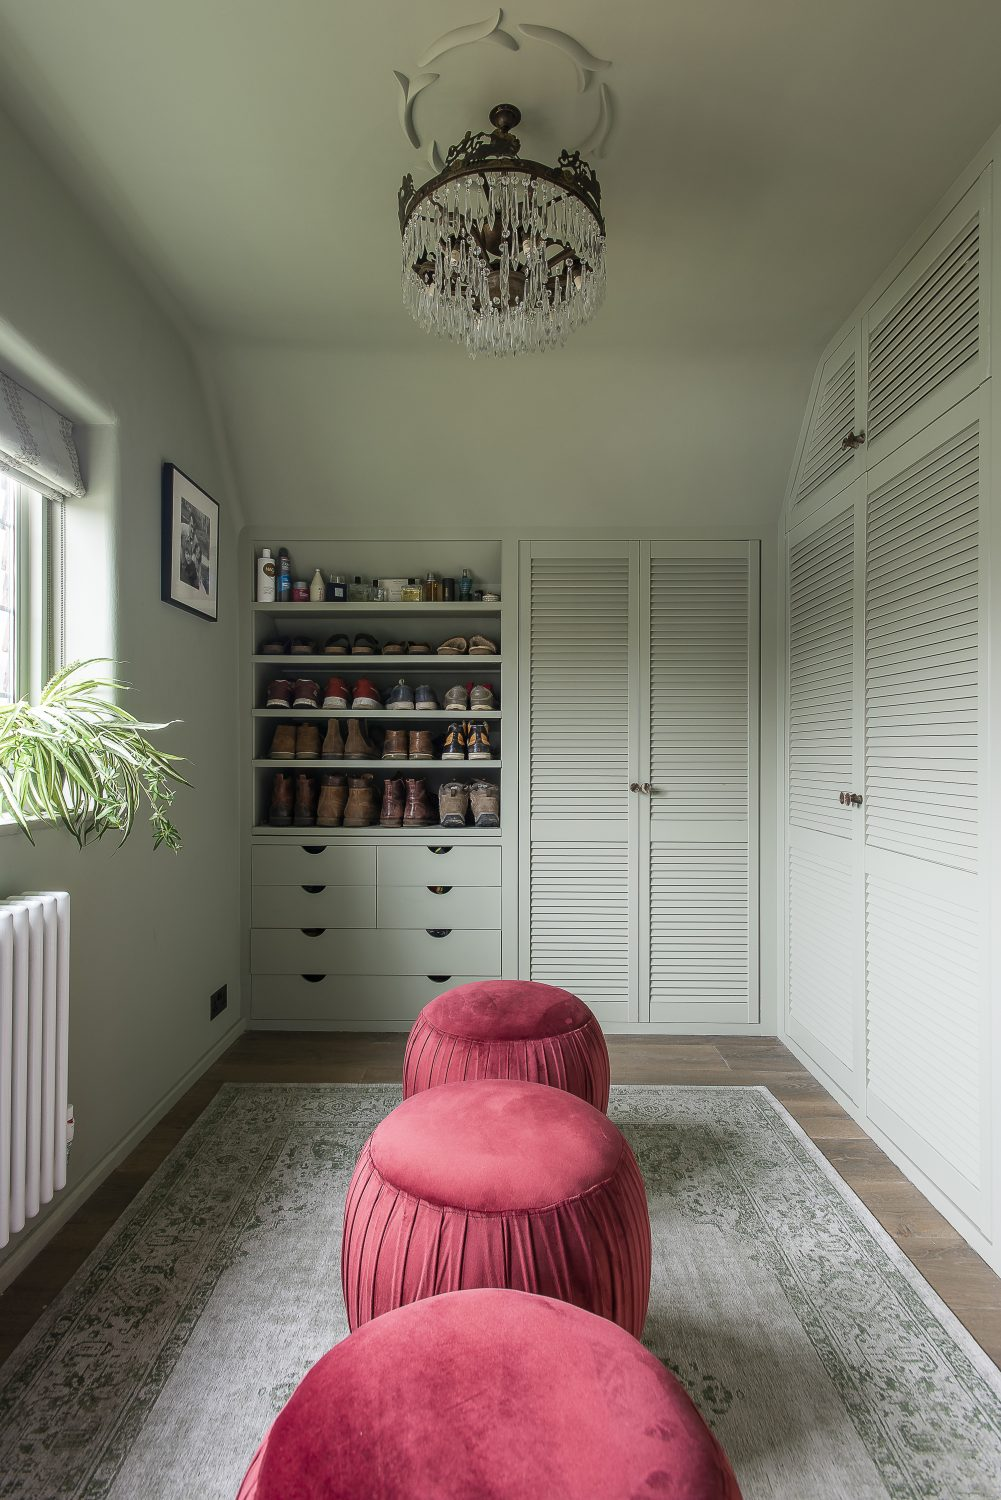 The dressing room houses a trundle bed for guests cleverly concealed behind louvred doors